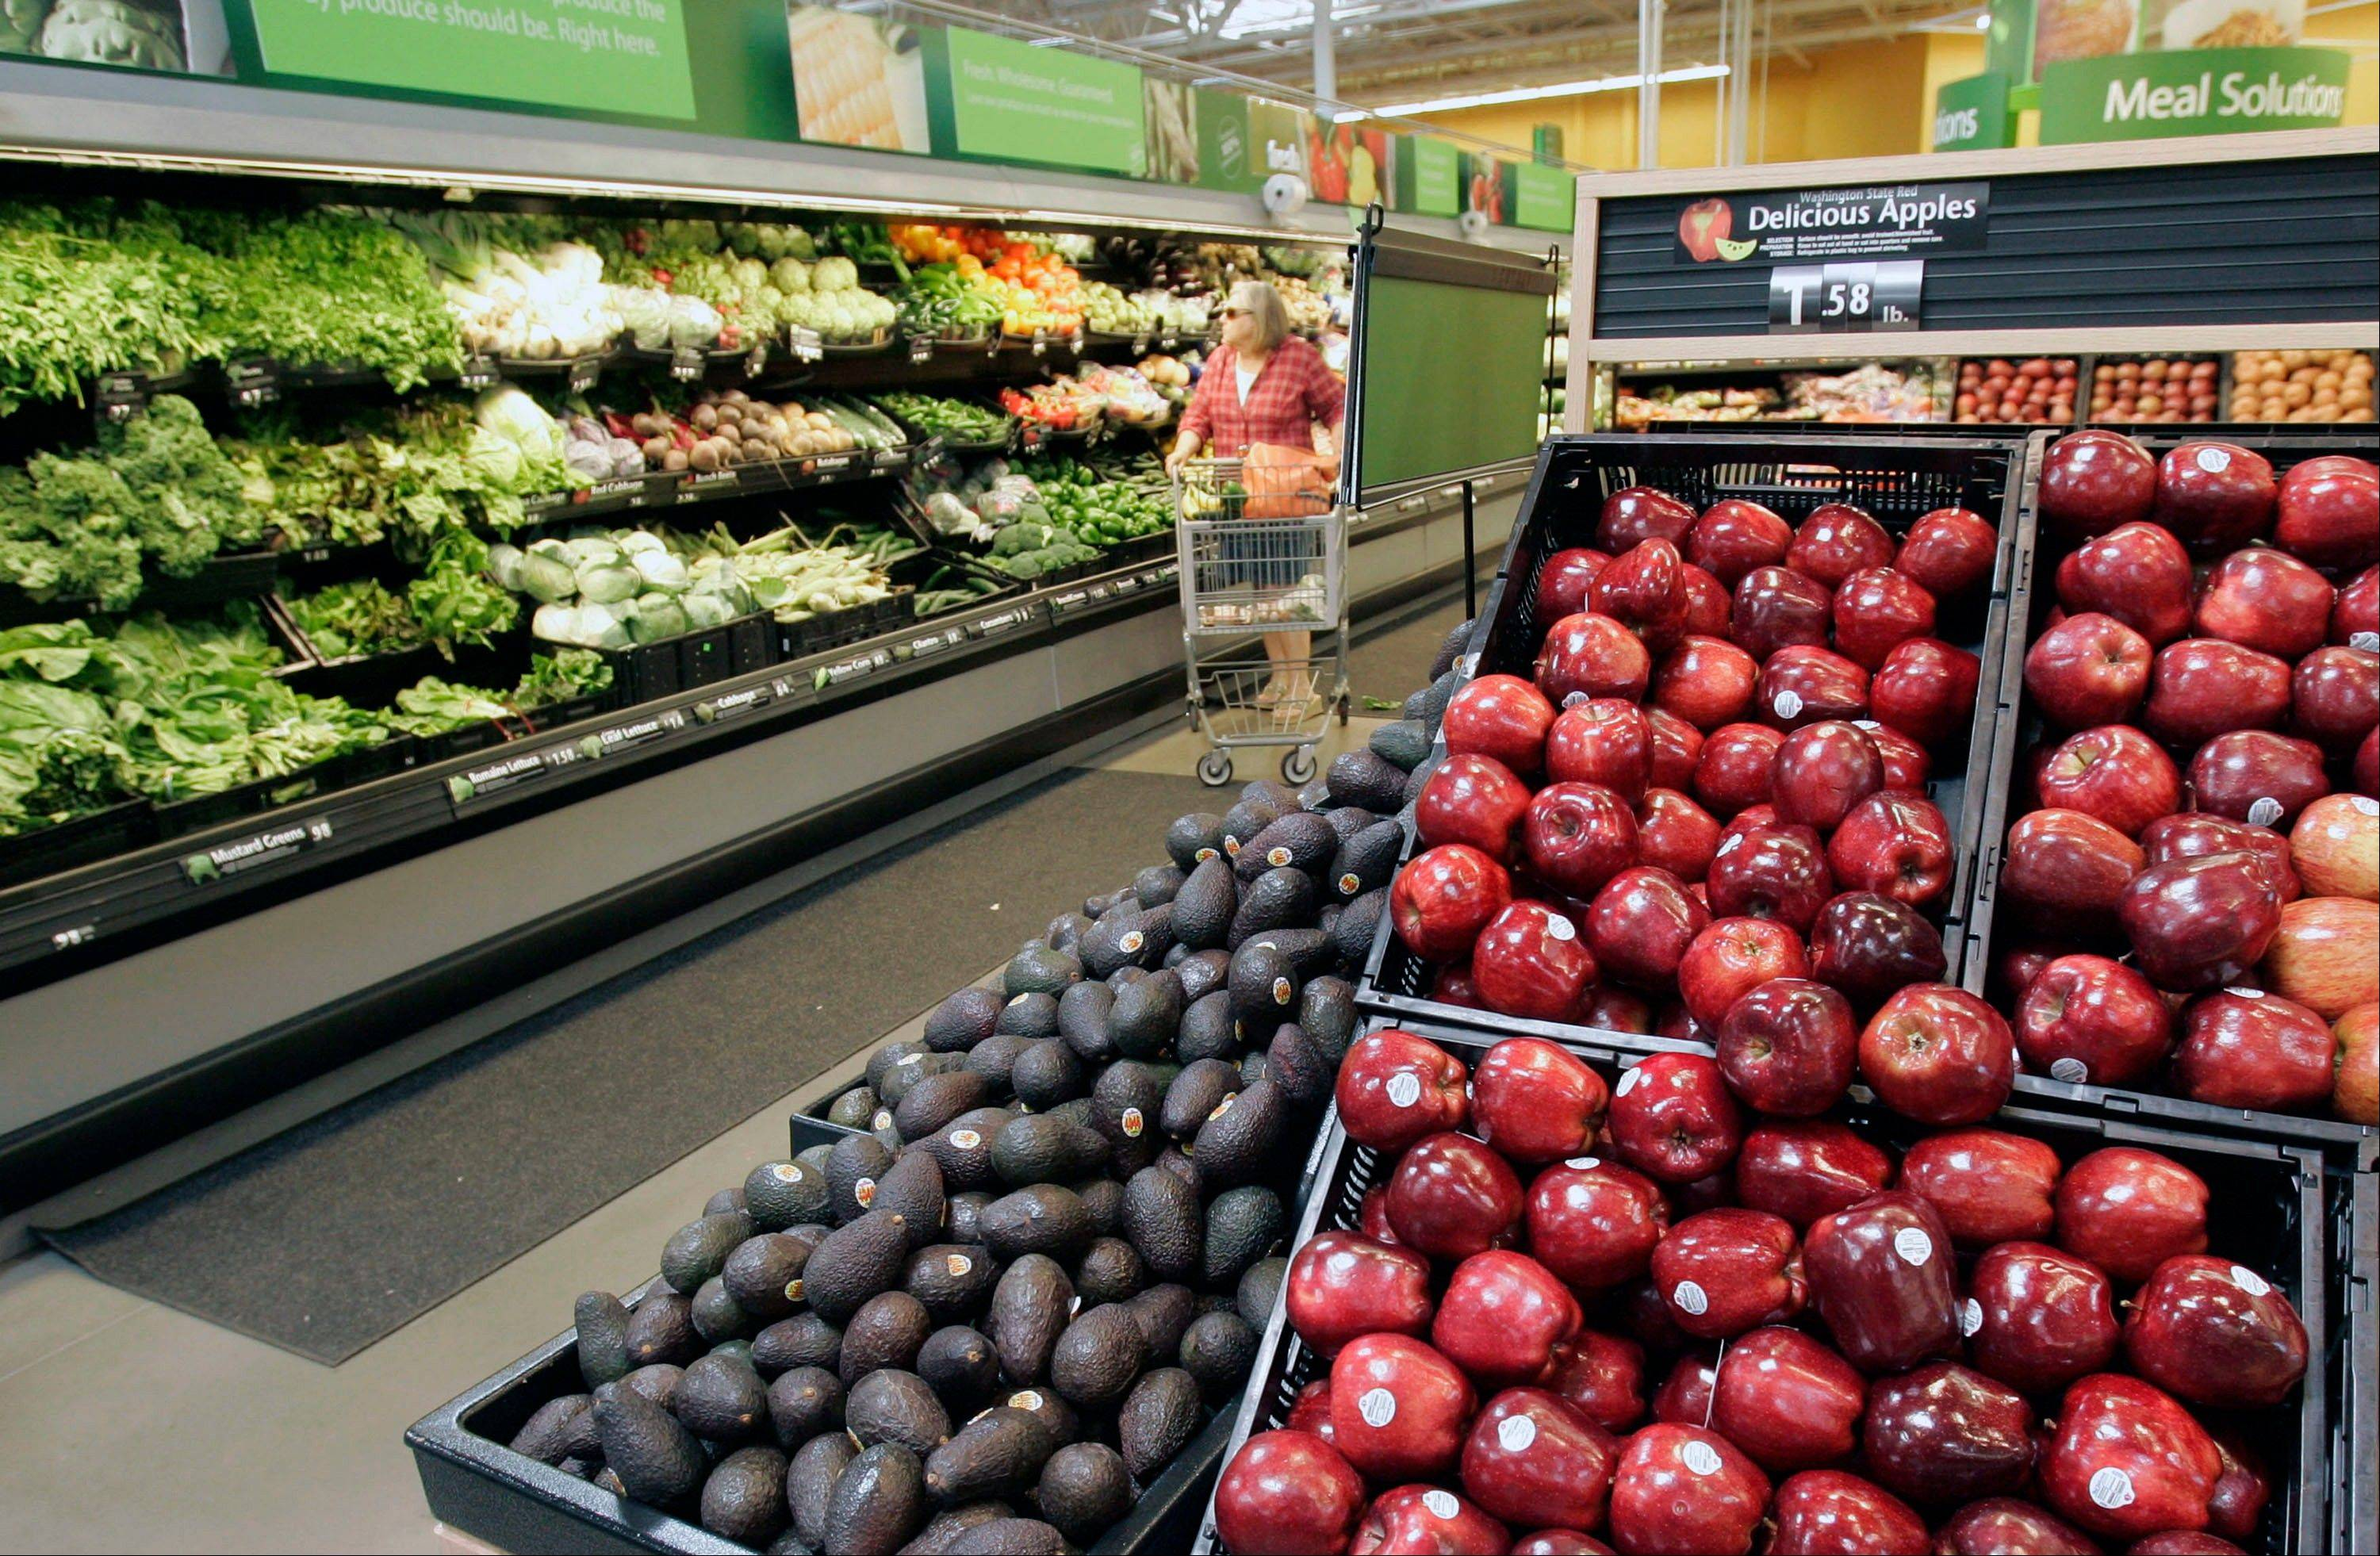 A woman shops for produce in a Maumelle, Ark., Wal-Mart Stores Inc., Supercenter store. The nation�s largest grocer and retailer announced steps Monday to improve the quality of its fresh fruits and vegetables.